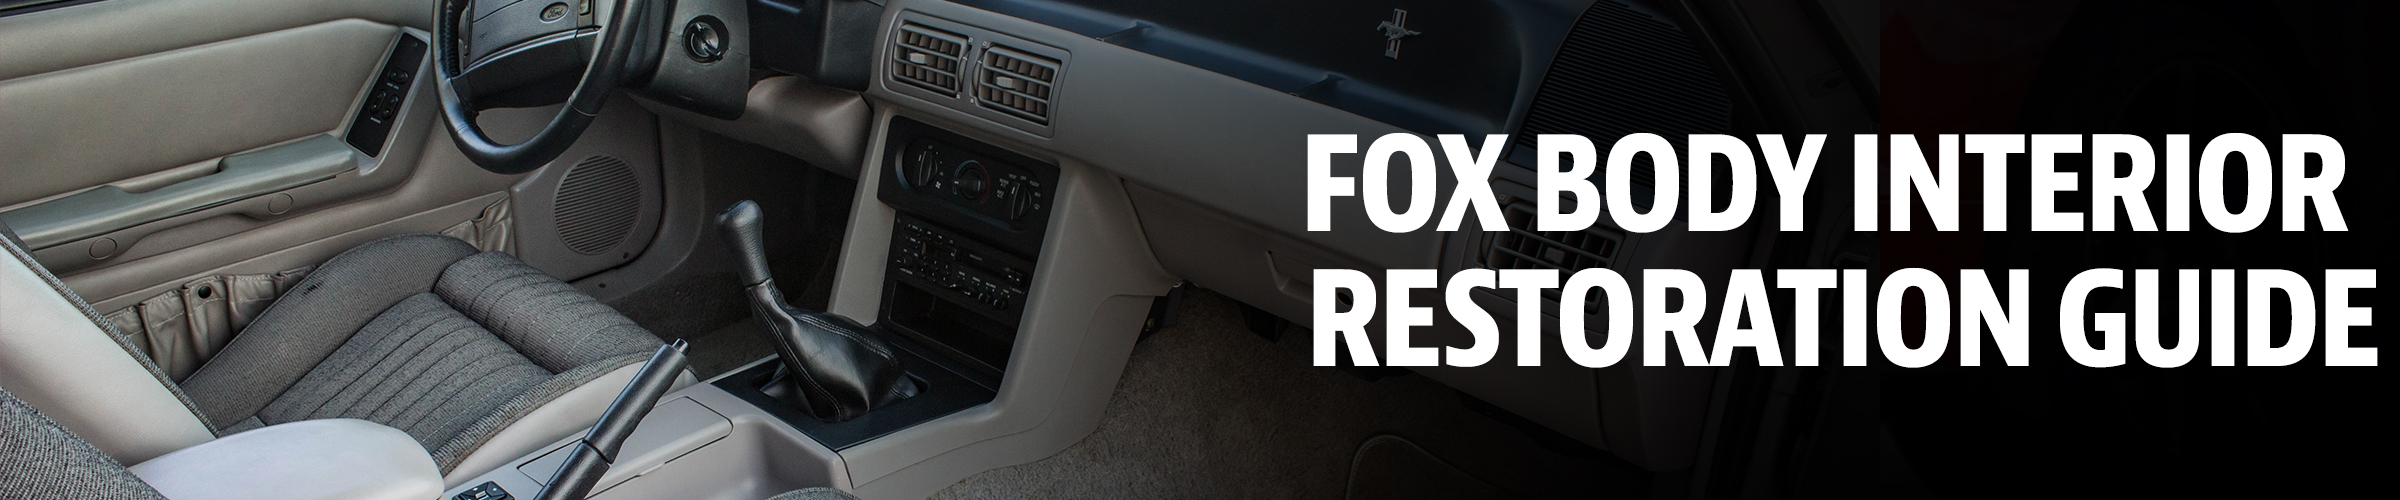 Fox Body Mustang Restoration: Interior Guide